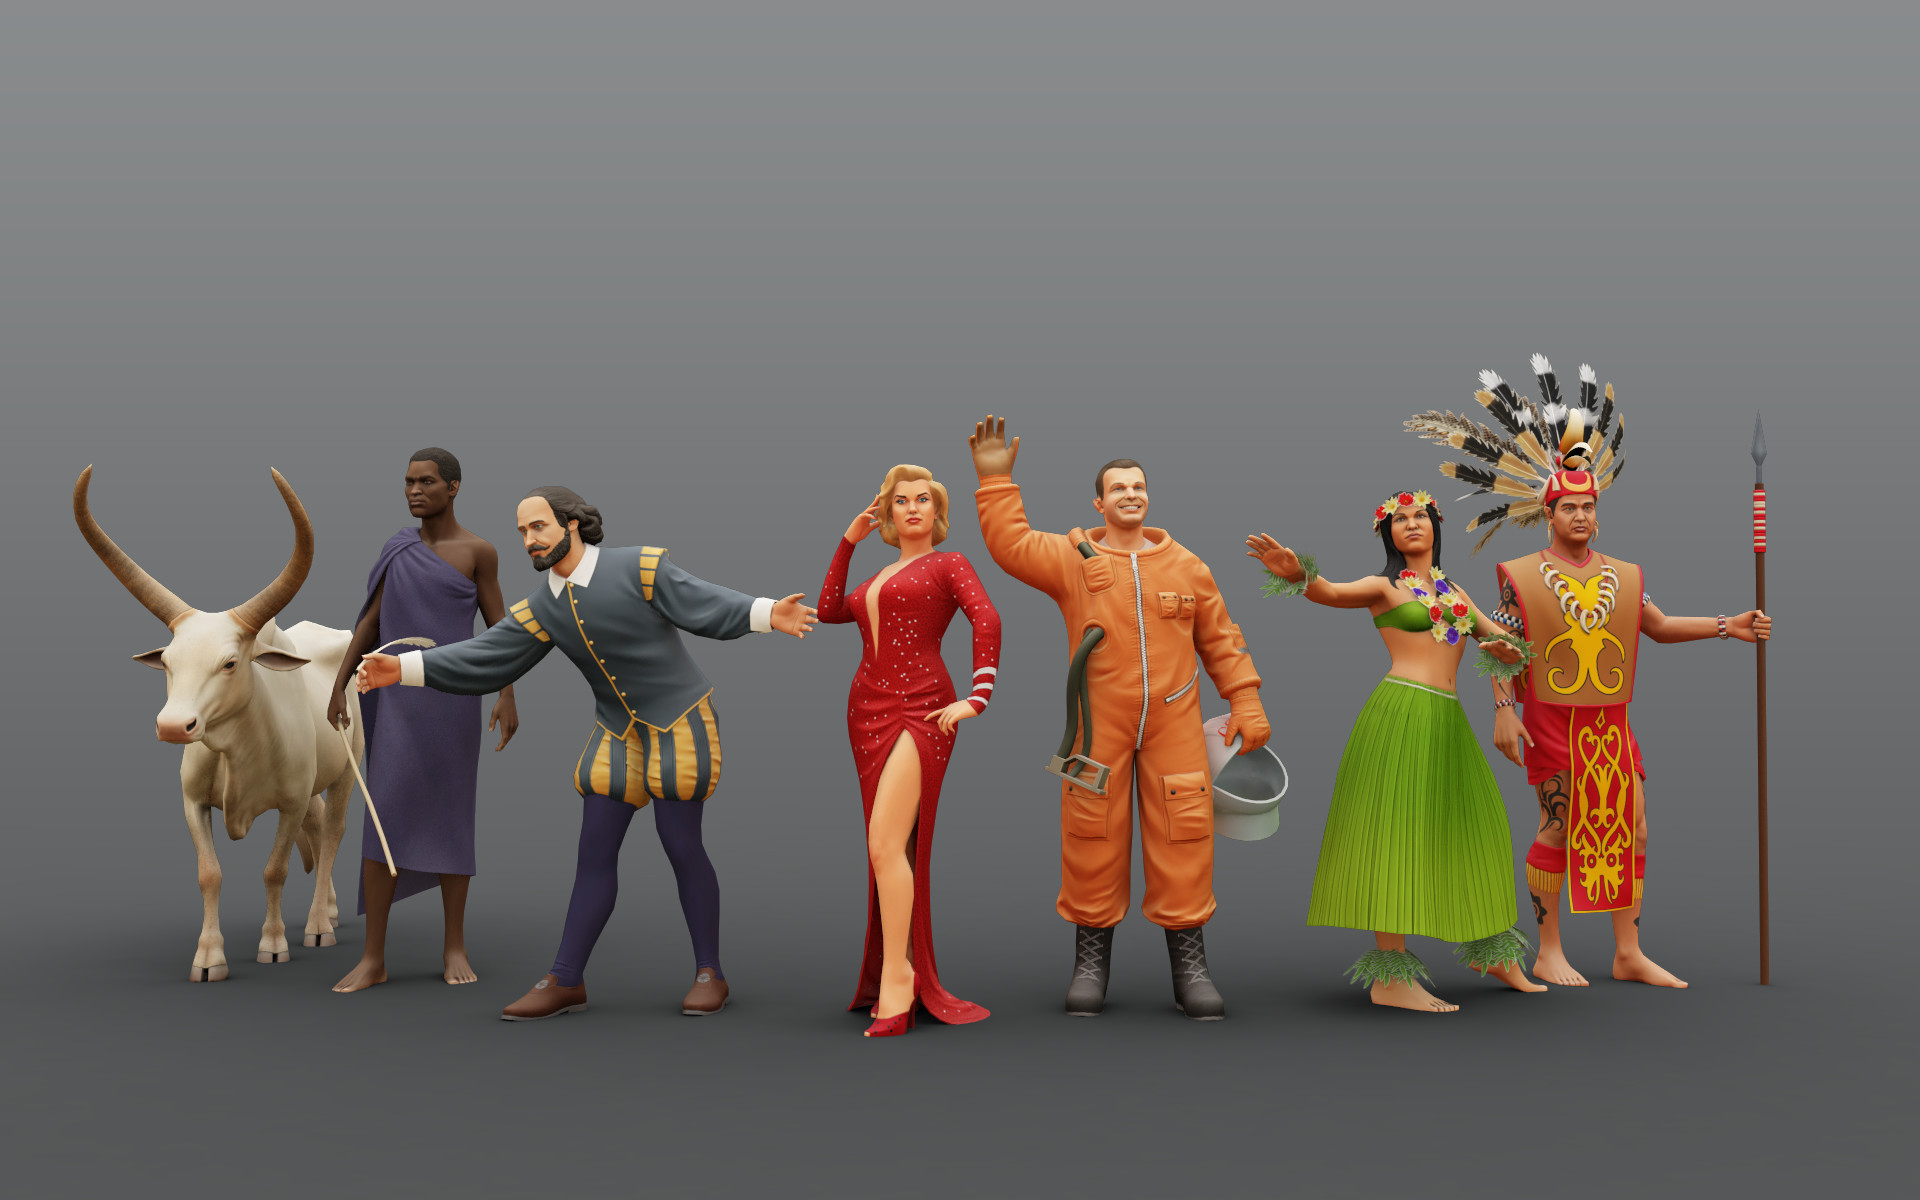 sergey-abanin-people-low-poly | 3d artist